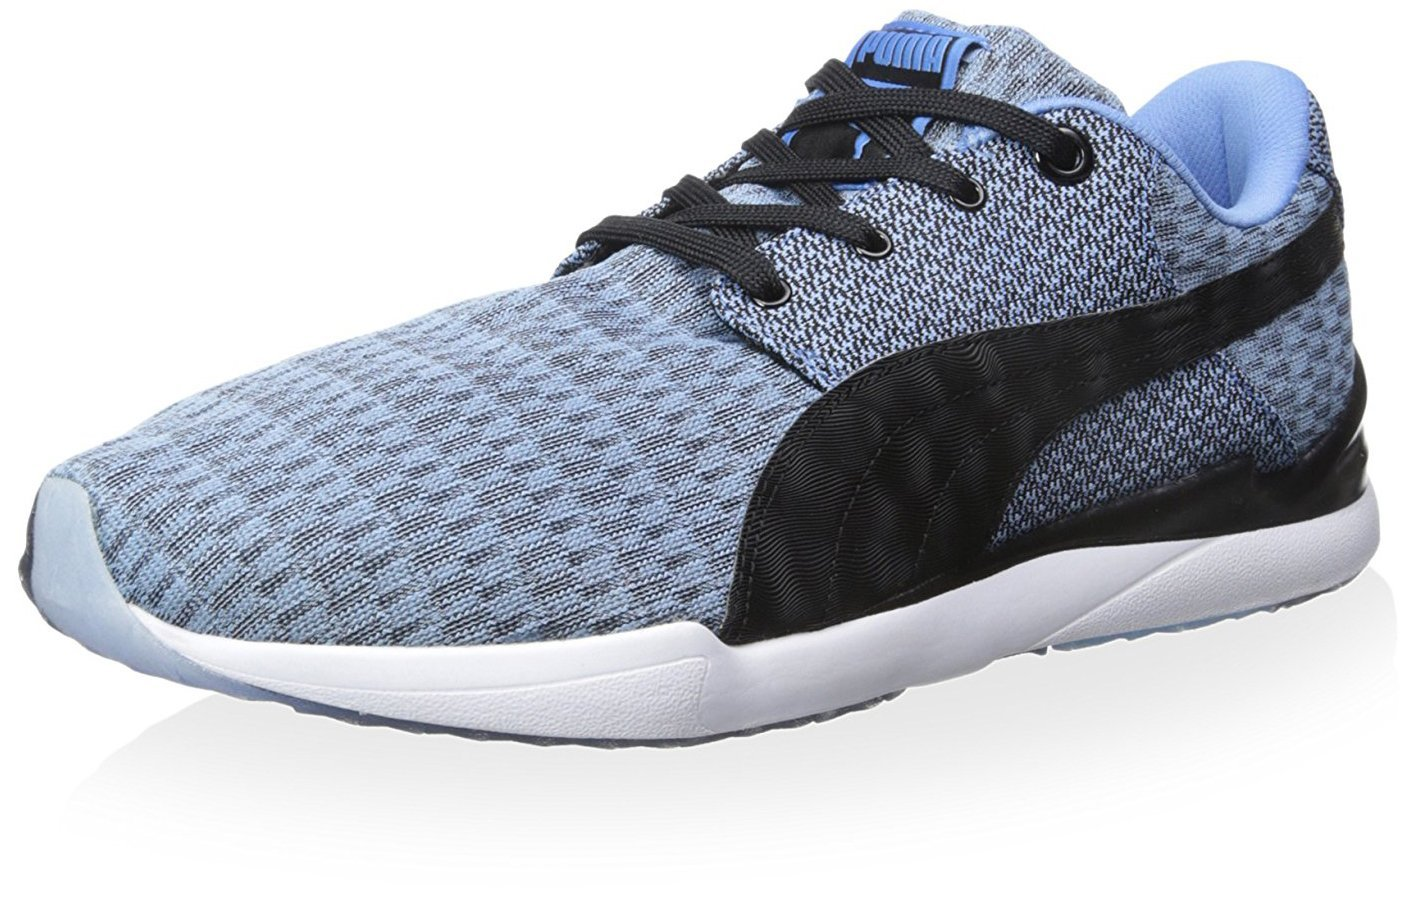 PUMA Men's Future Trinomic Swift Chain B01ALOX3K8 9 D(M) US|Little Boy Blue/Black